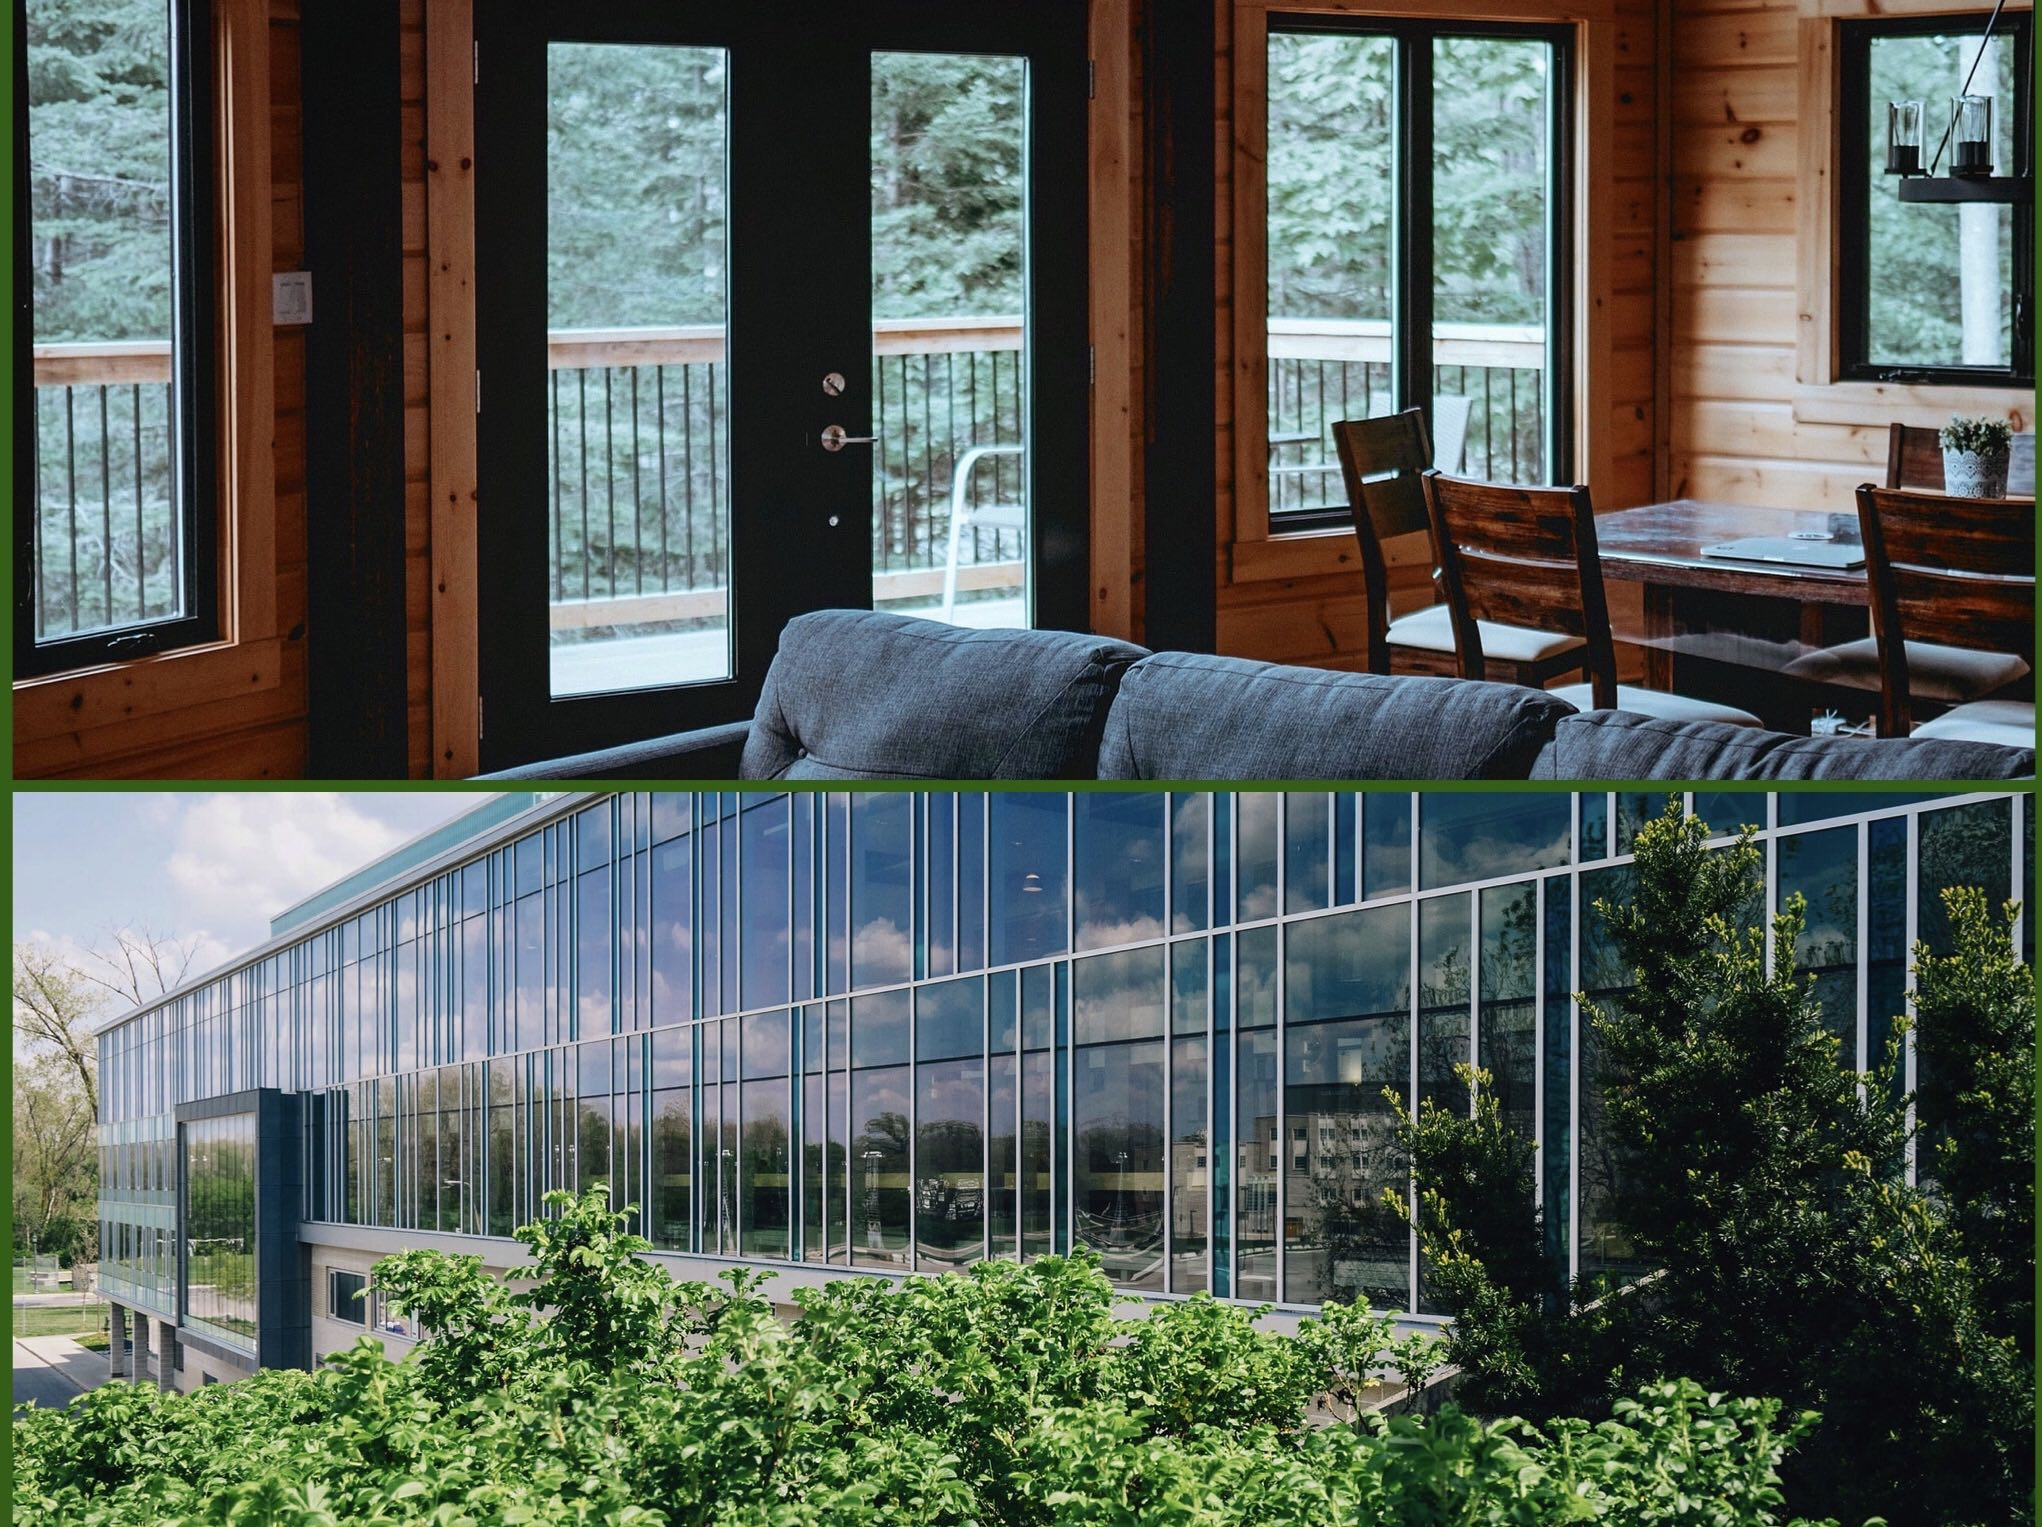 Seeing Green: Solar Control Window Films Save Money & Conserve Energy - Home and Commercial Window Film in New Orleans, Louisiana